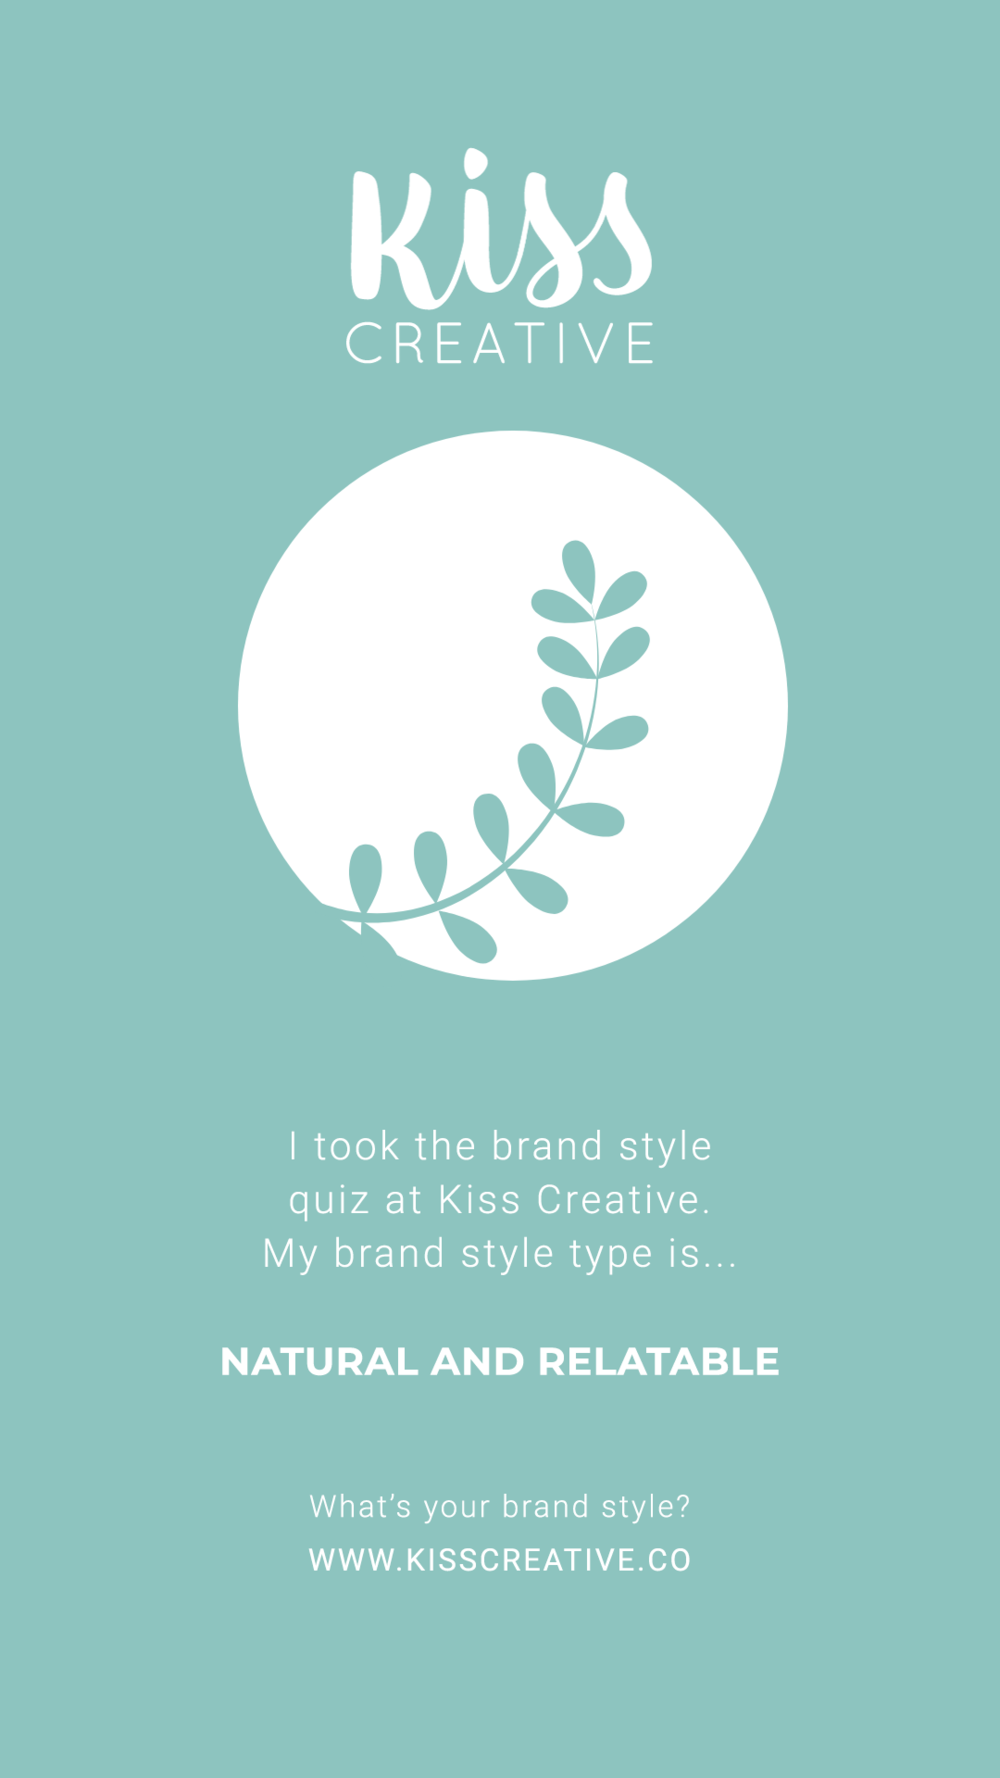 I took the Kiss Creative brand style quiz and I got Natural and Relatable!